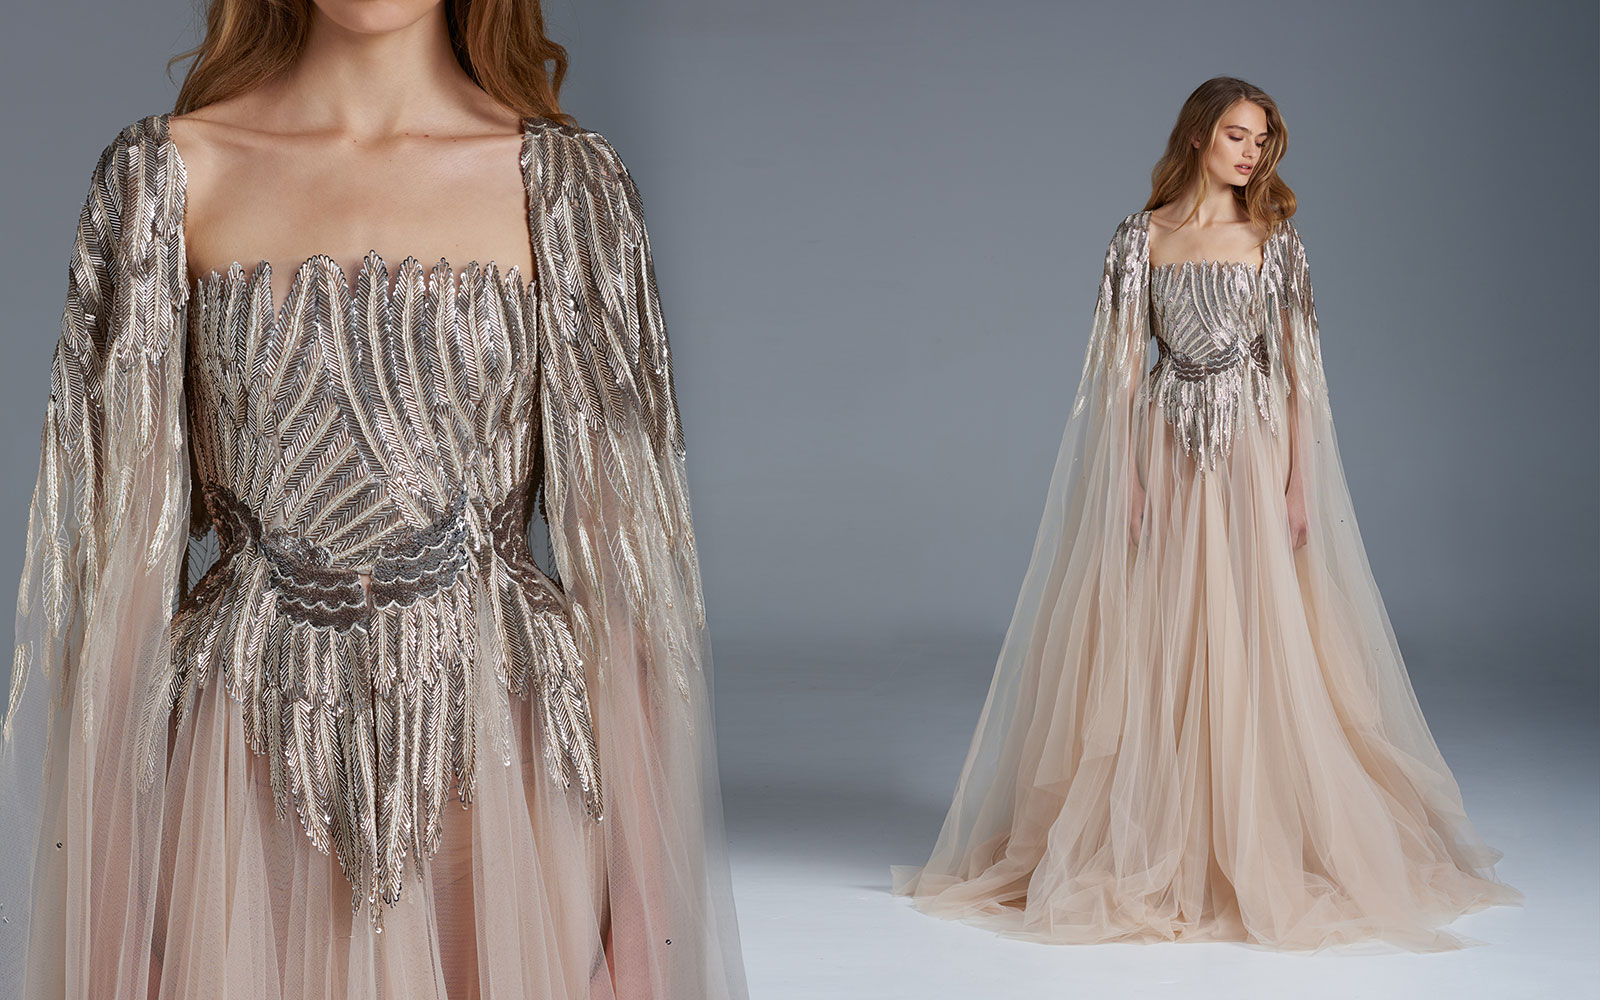 Project Fairytale: Paolo Sebastian Couture